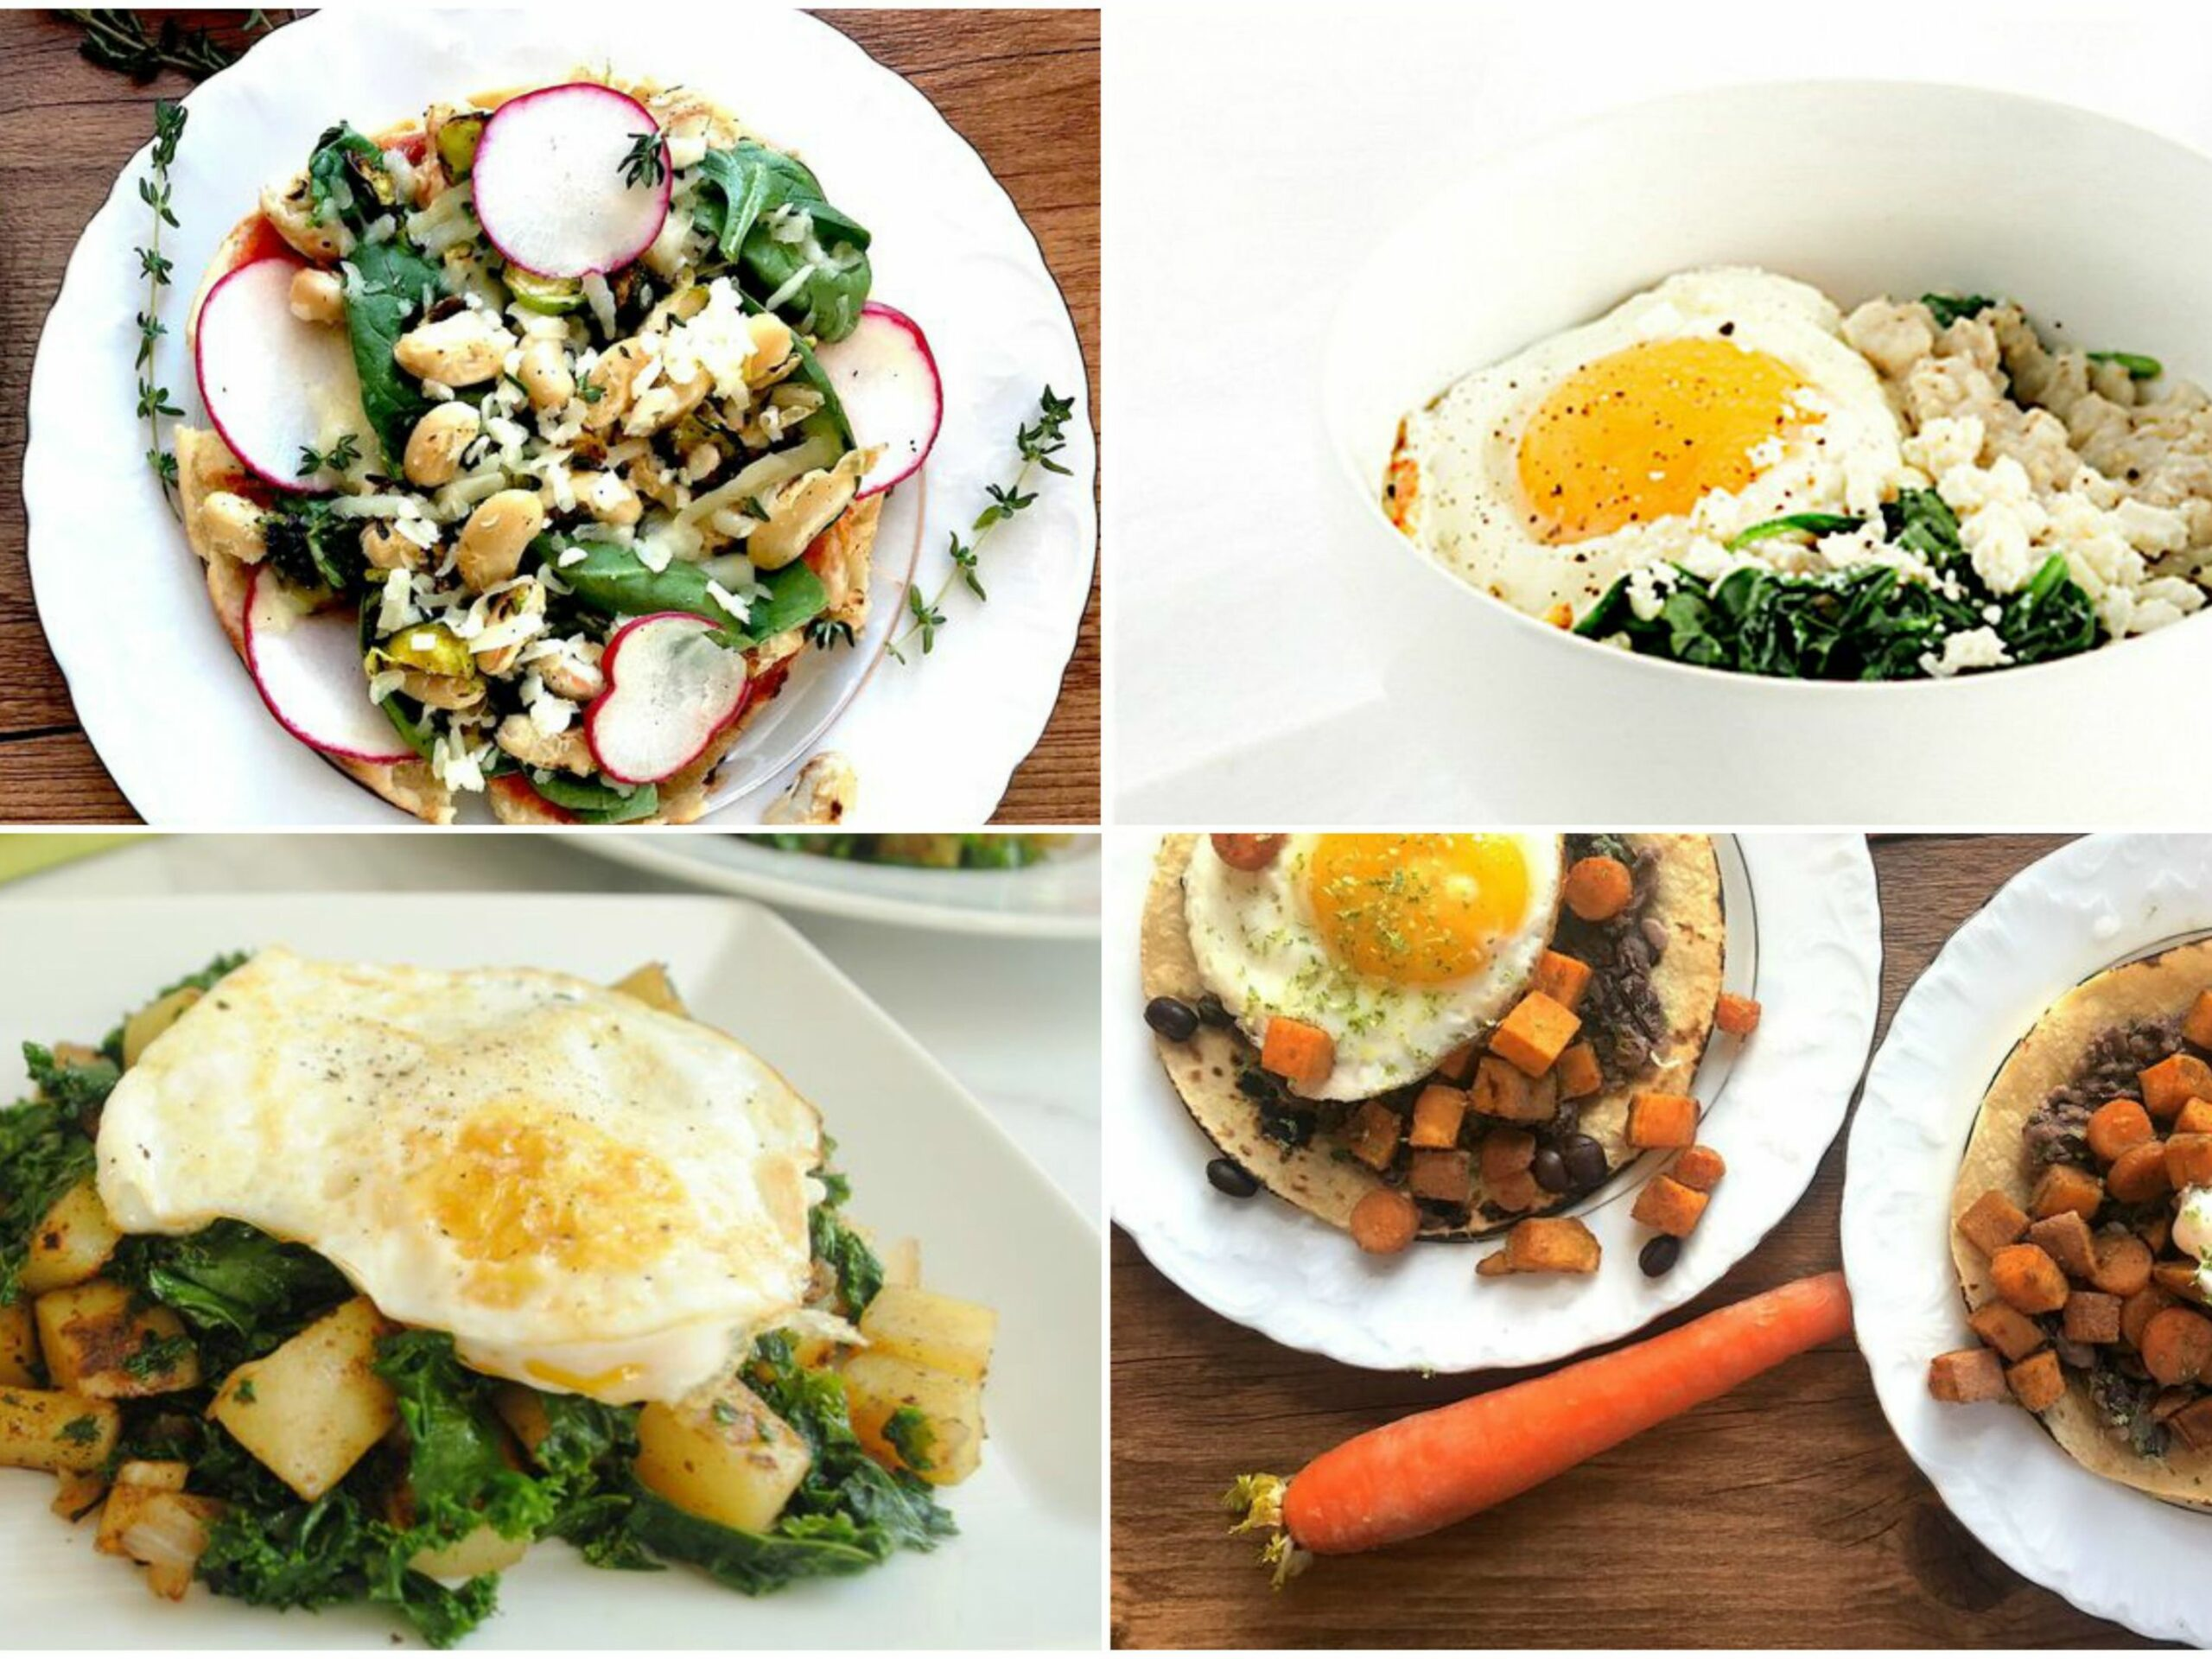 9 Iron-Rich Vegetarian Meals - Food Recipes High In Iron